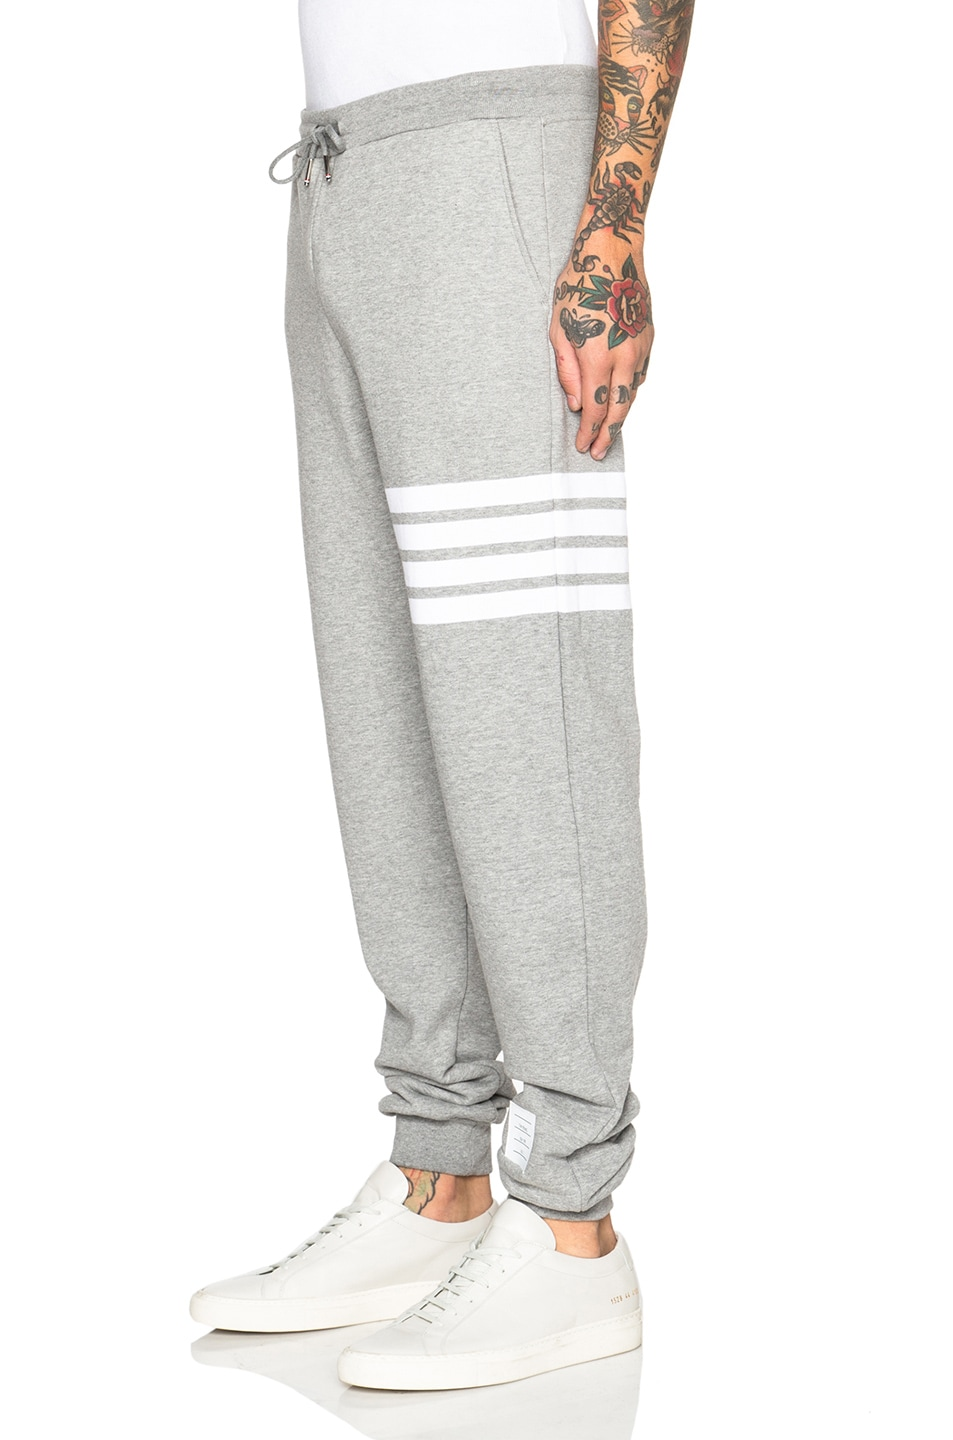 Image 2 of Thom Browne Cotton Sweatpants in Light Heather Grey